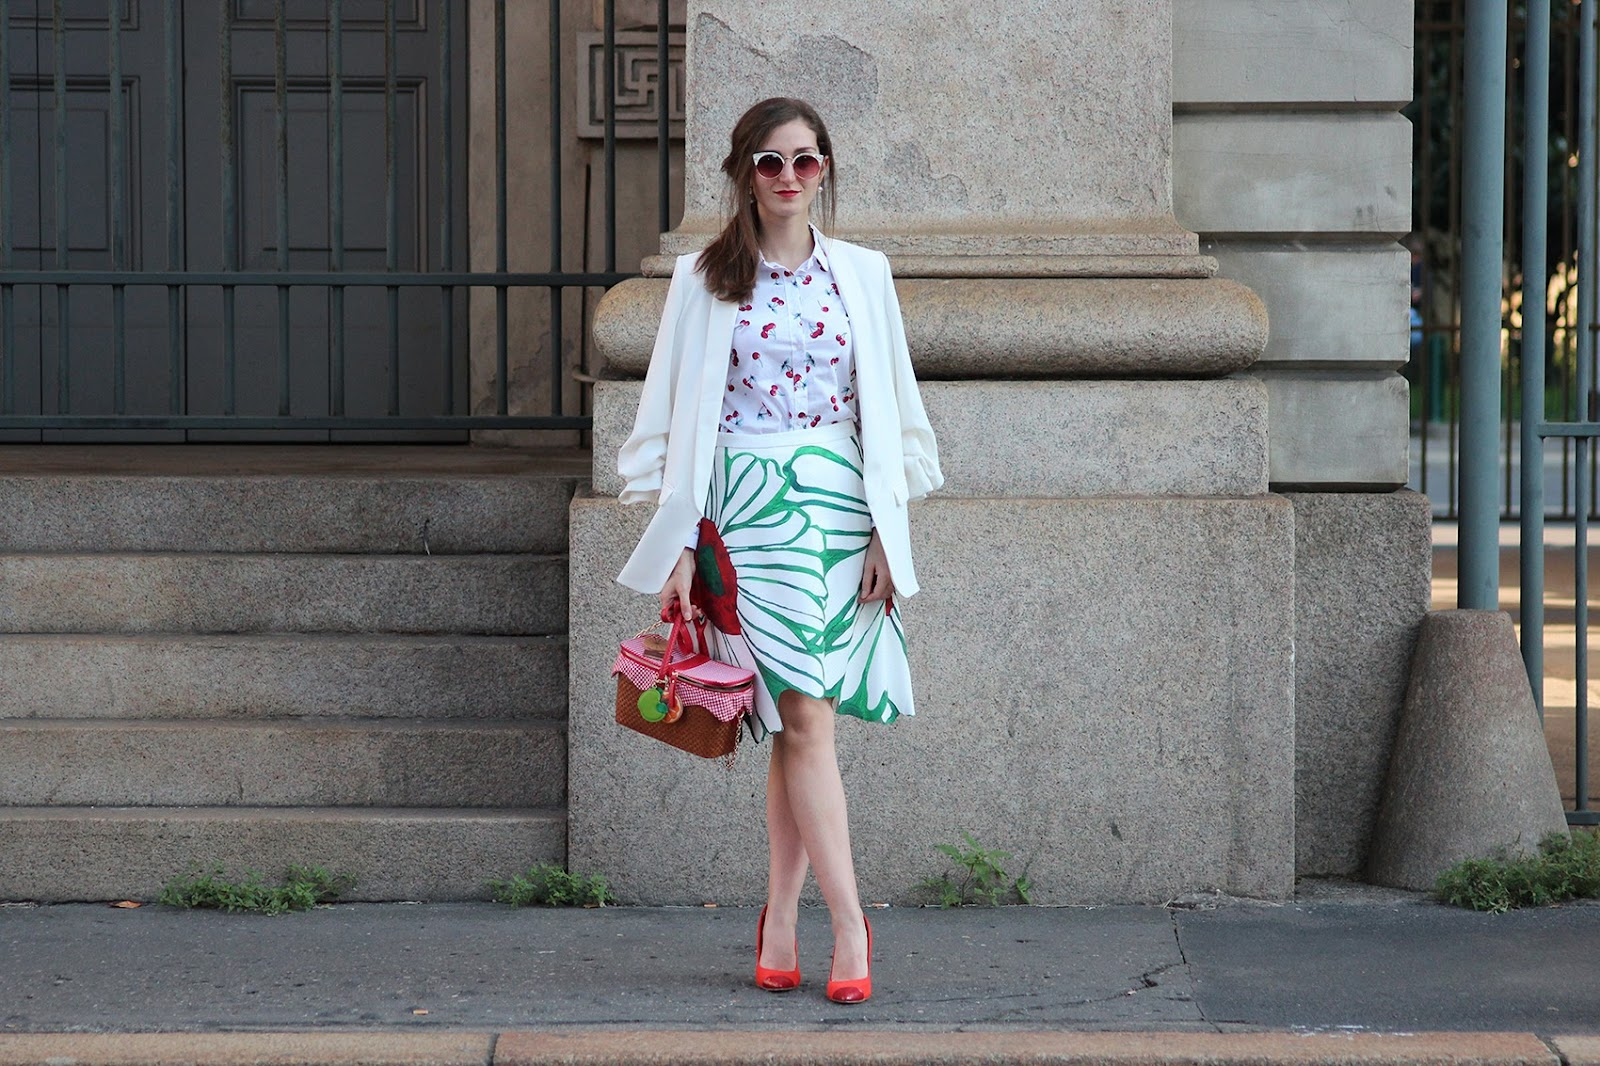 fashion style blogger outfit ootd italian girl italy trend vogue glamour milano fashion week mfw flower skirt accessorize pic nic bag zara blazer red heels hm